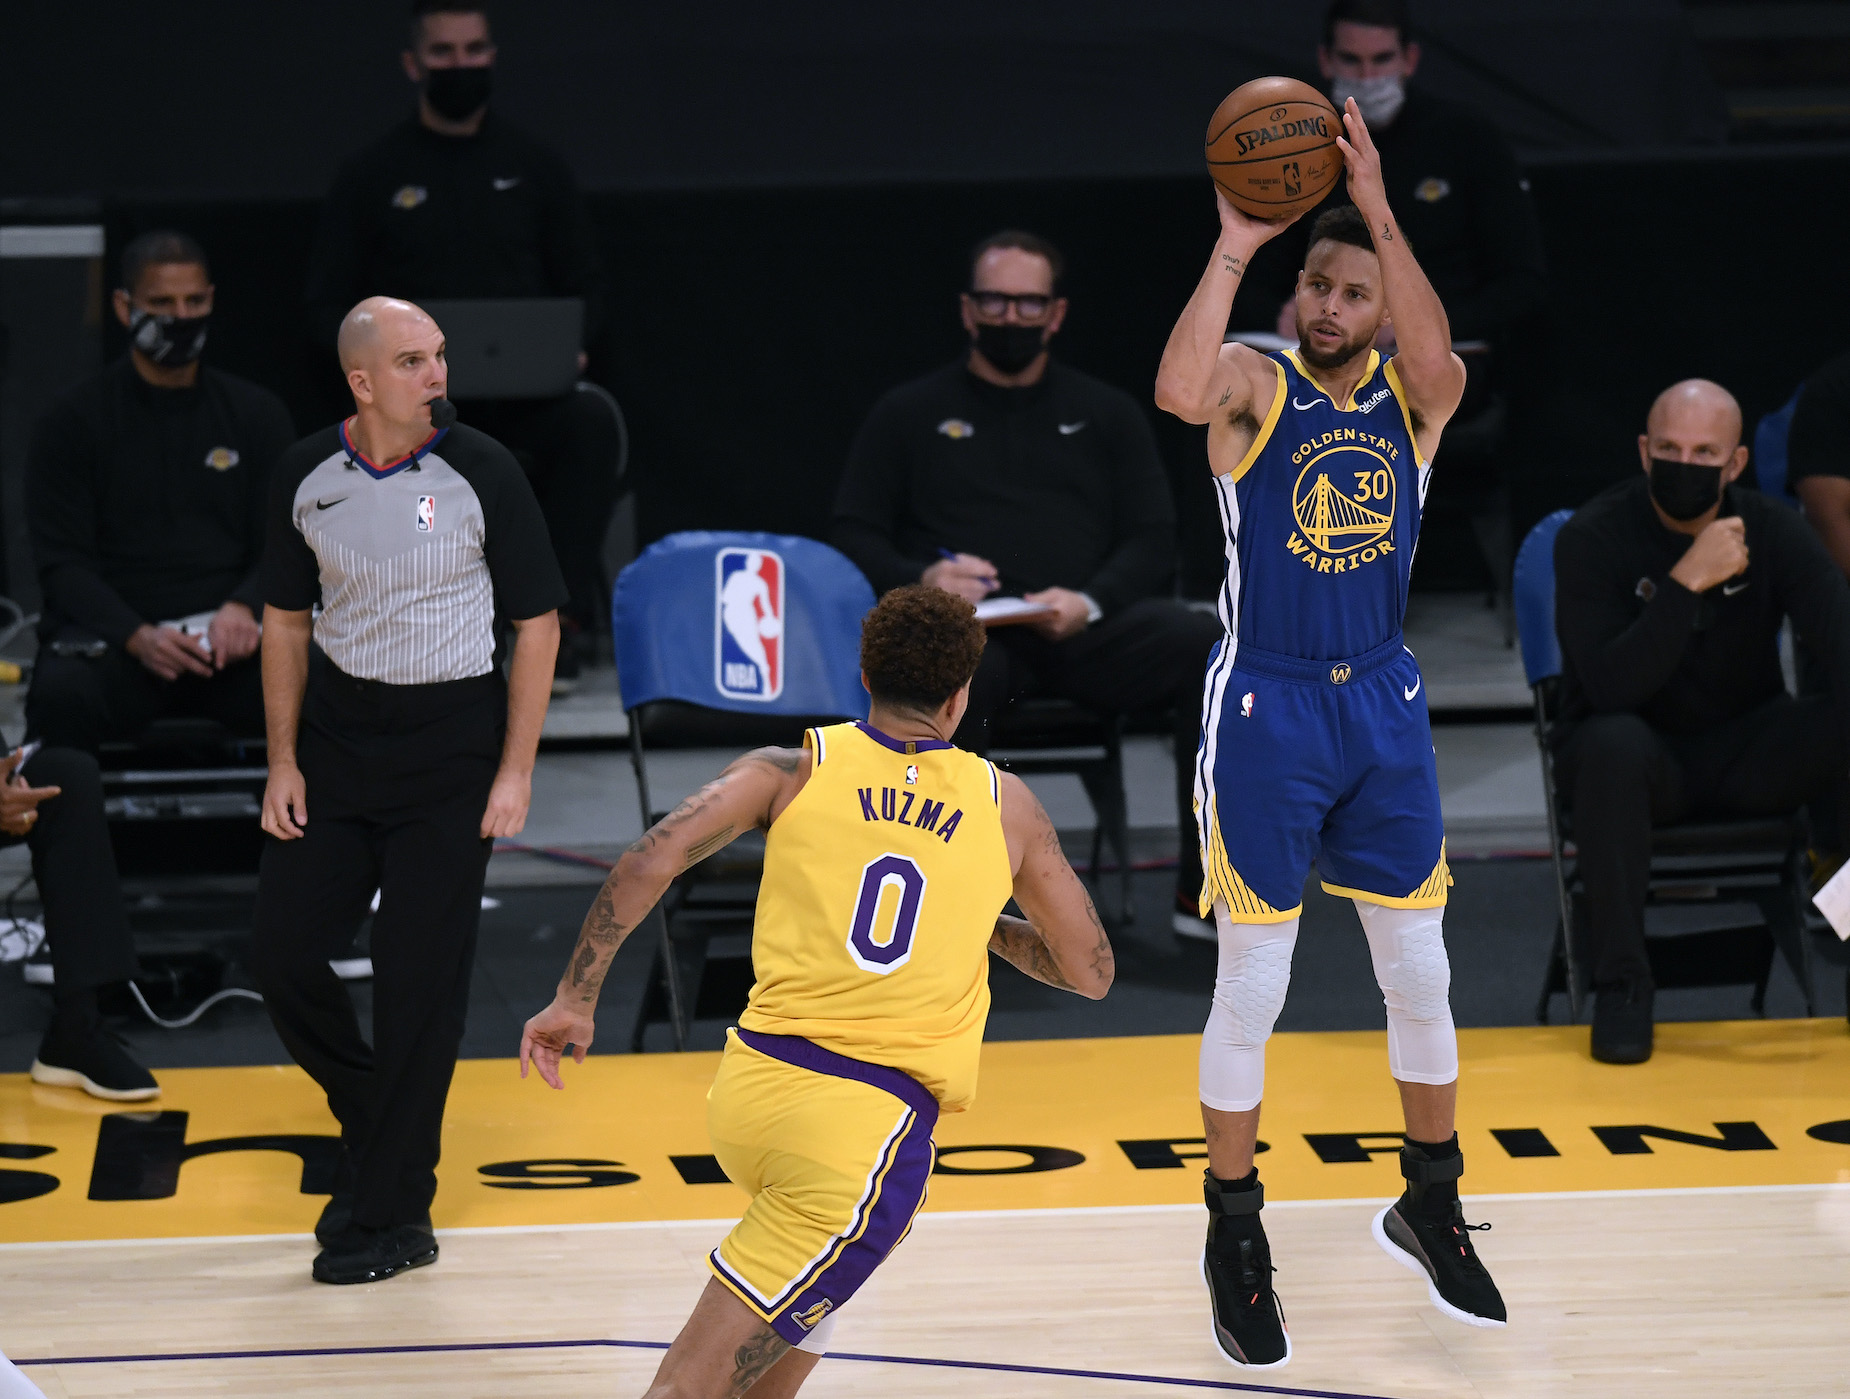 Is Golden State Warriors guard Steph Curry the NBA's GOAT shooter?